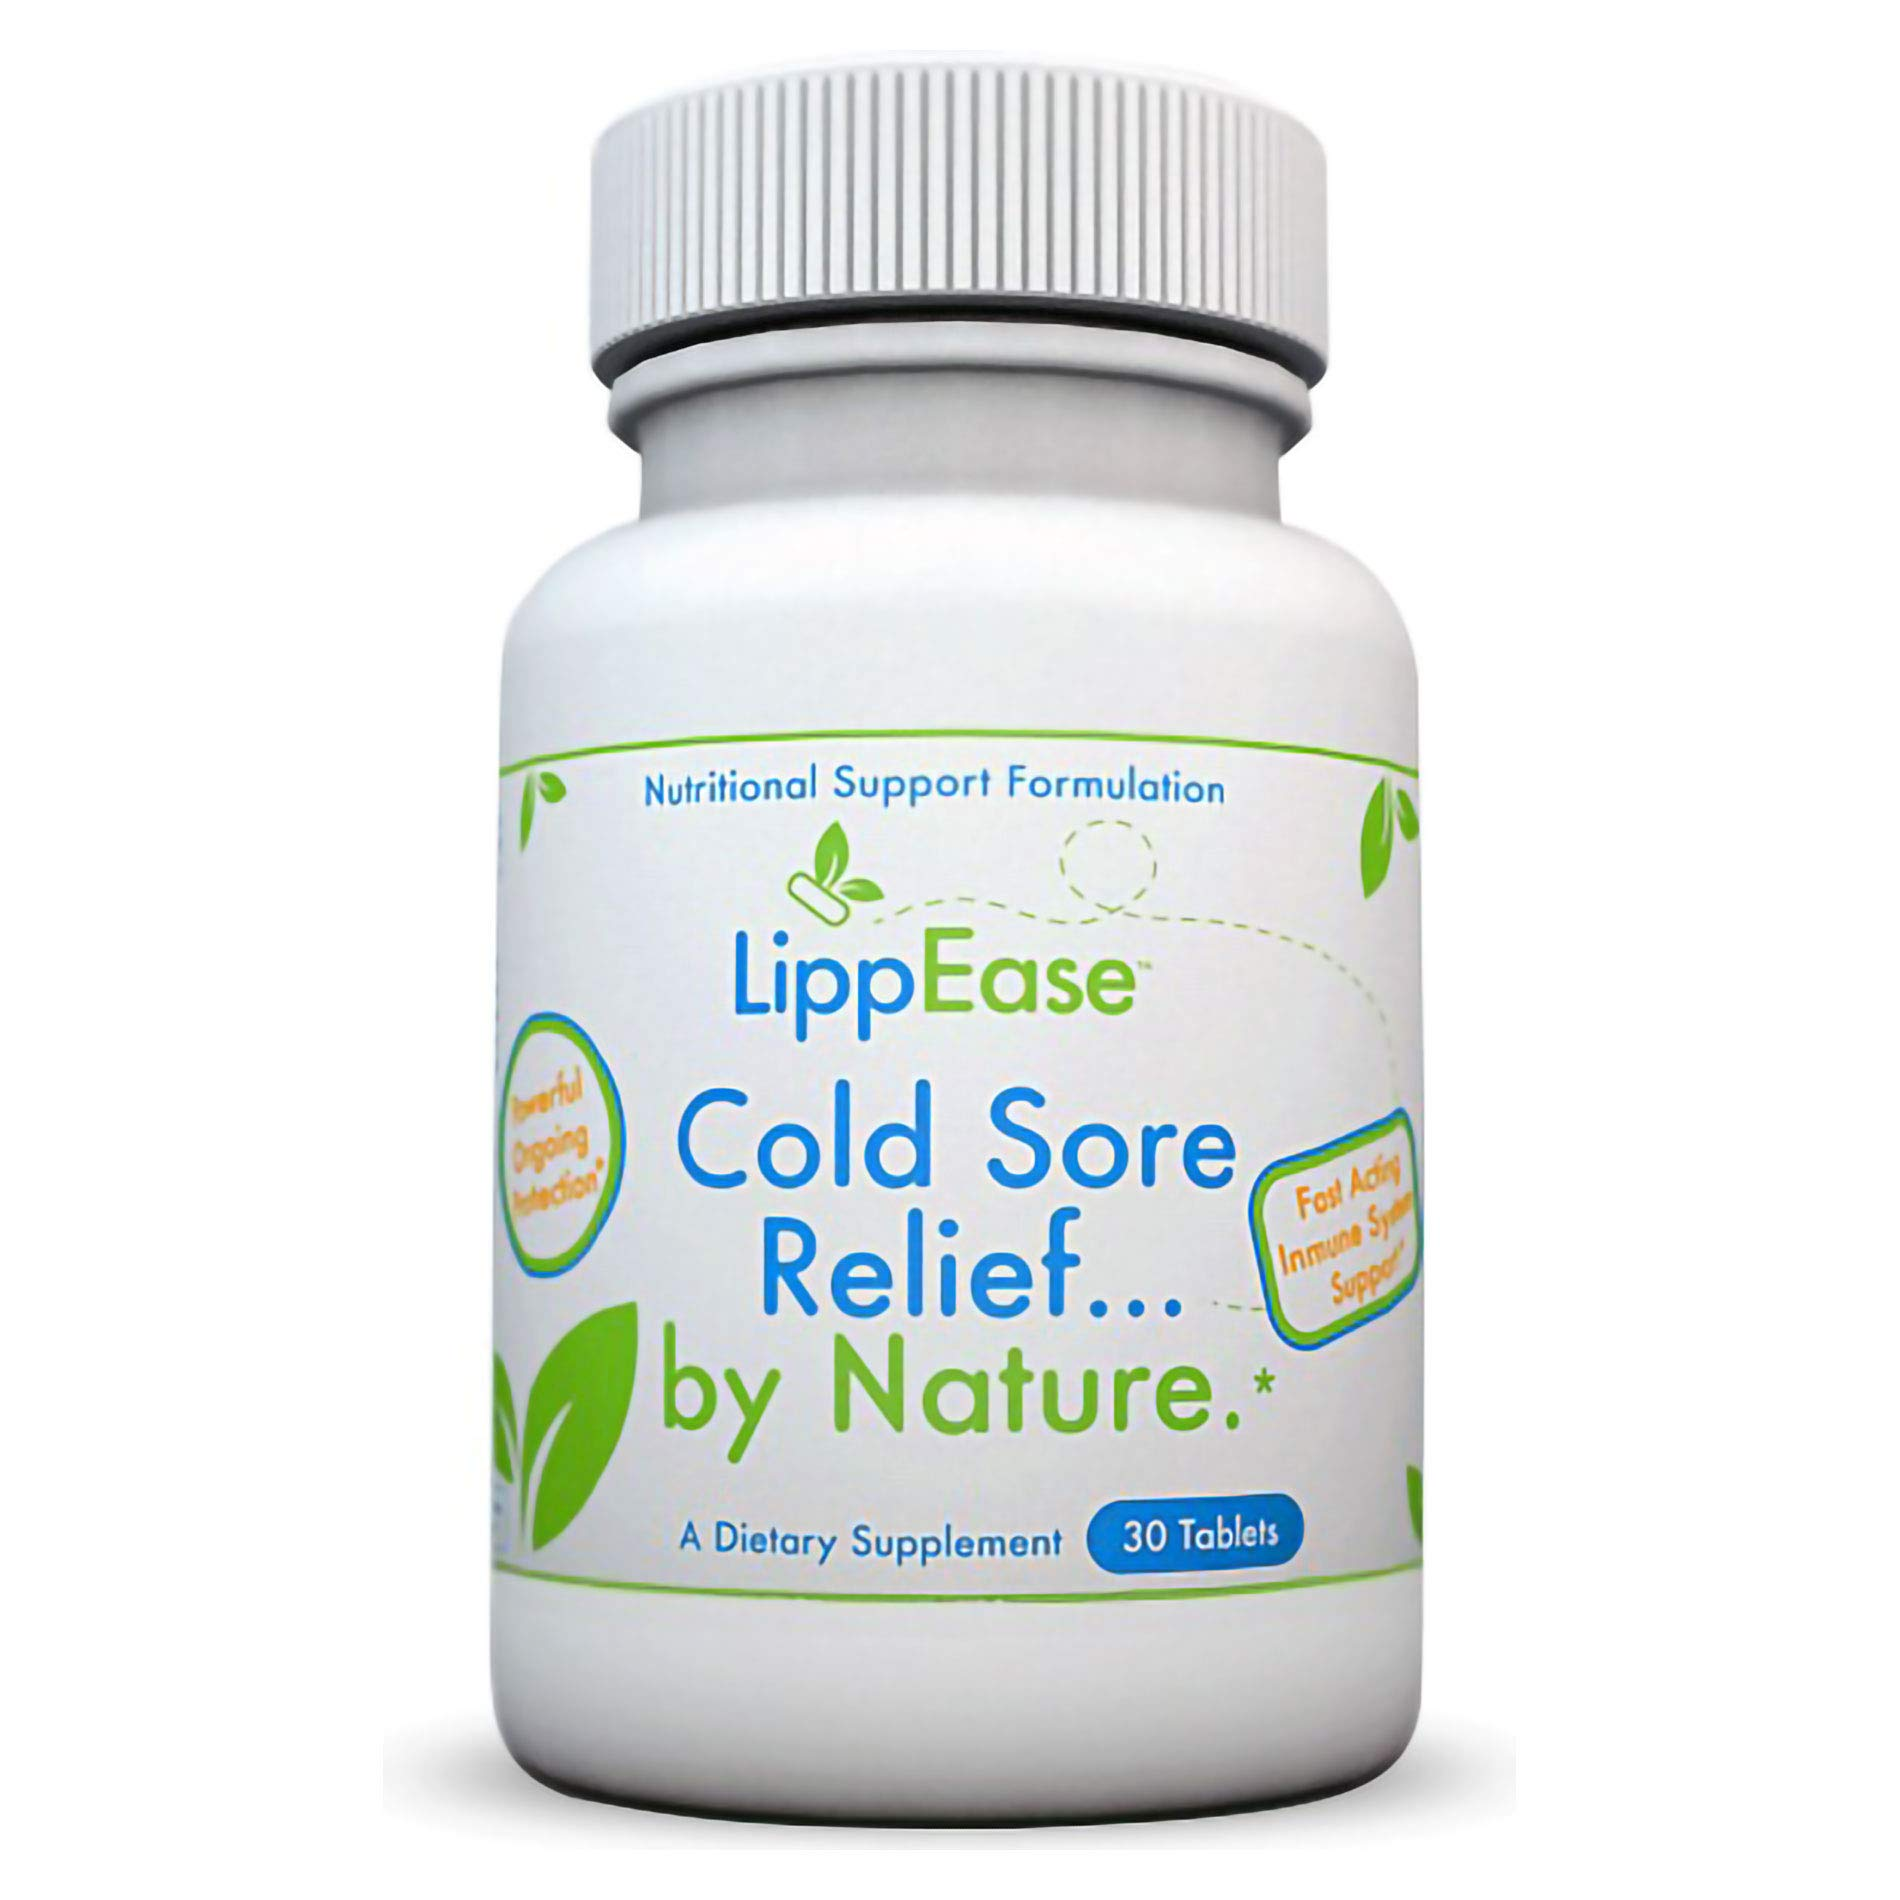 LippEase Natural Cold Sore & Herpes Treatment Supplement - Prevent & Speed up Cold Sore, Herpes or Fever Blister Outbreaks - Immune System Support -30 Count Tablets - 1 Pack